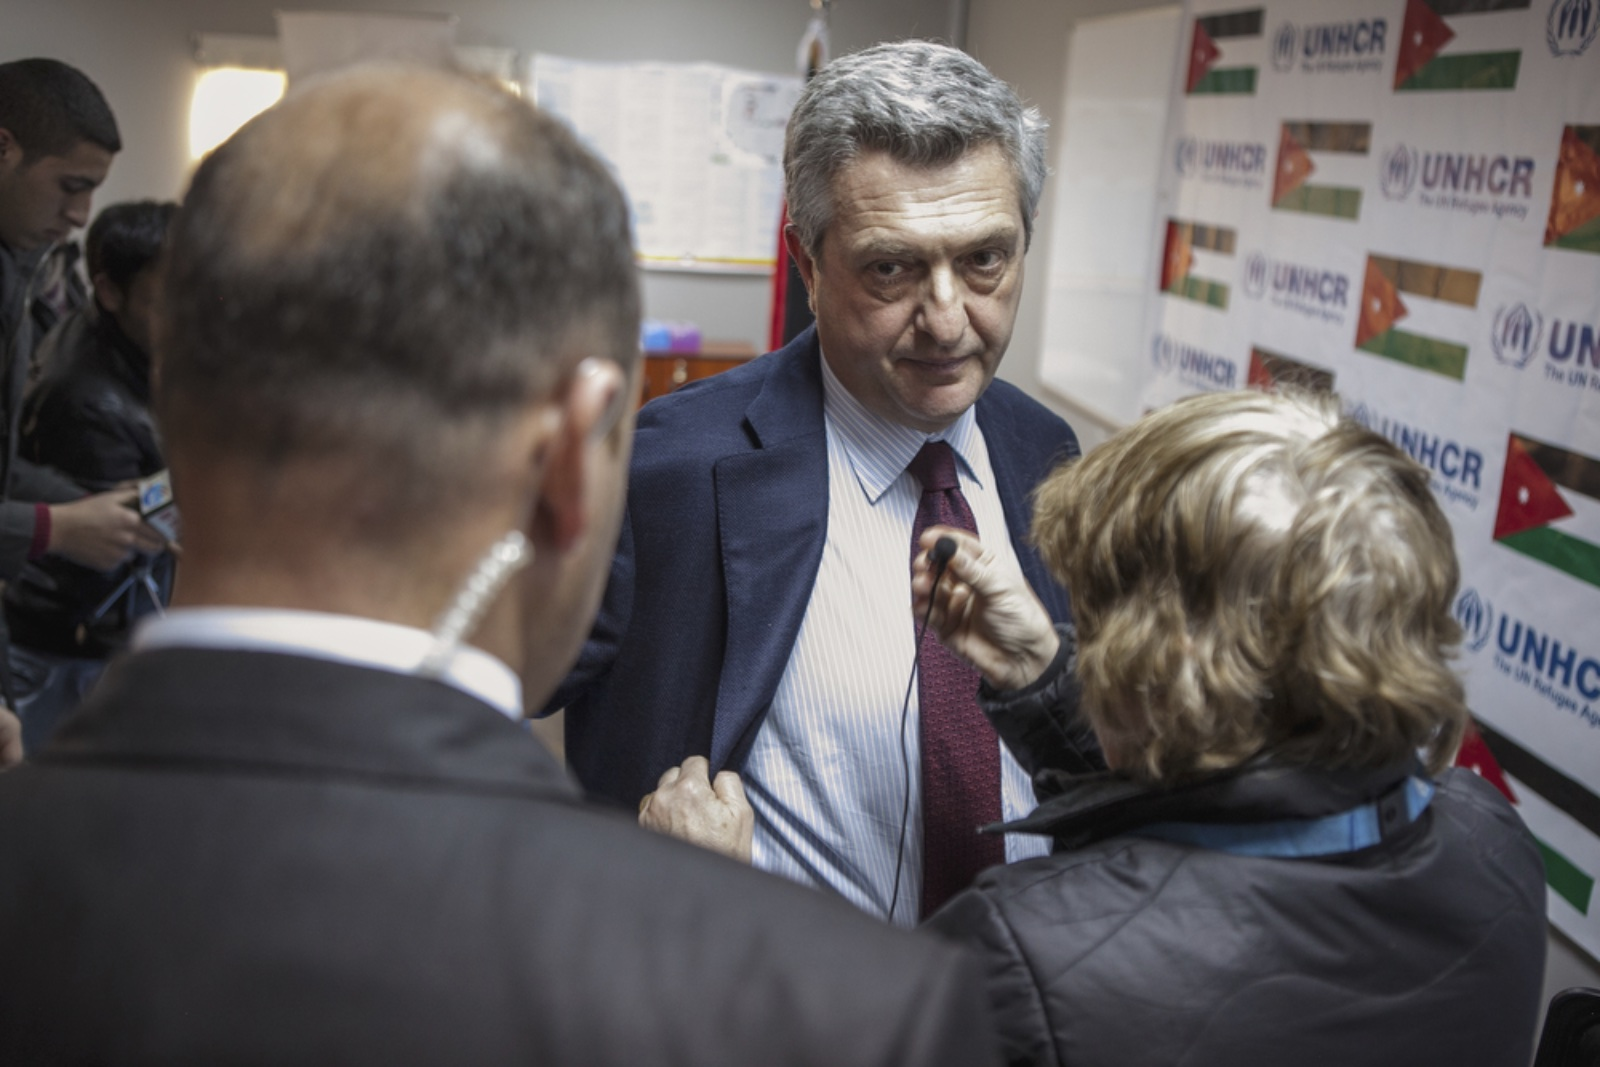 Filippo Grandi, the new United Nations High Commissioner for Refugees, speaks to his staff during a press conference at Zaatari refugee camp in Jordan on January 18, 2016. (Christopher Lee/GroundTruth)